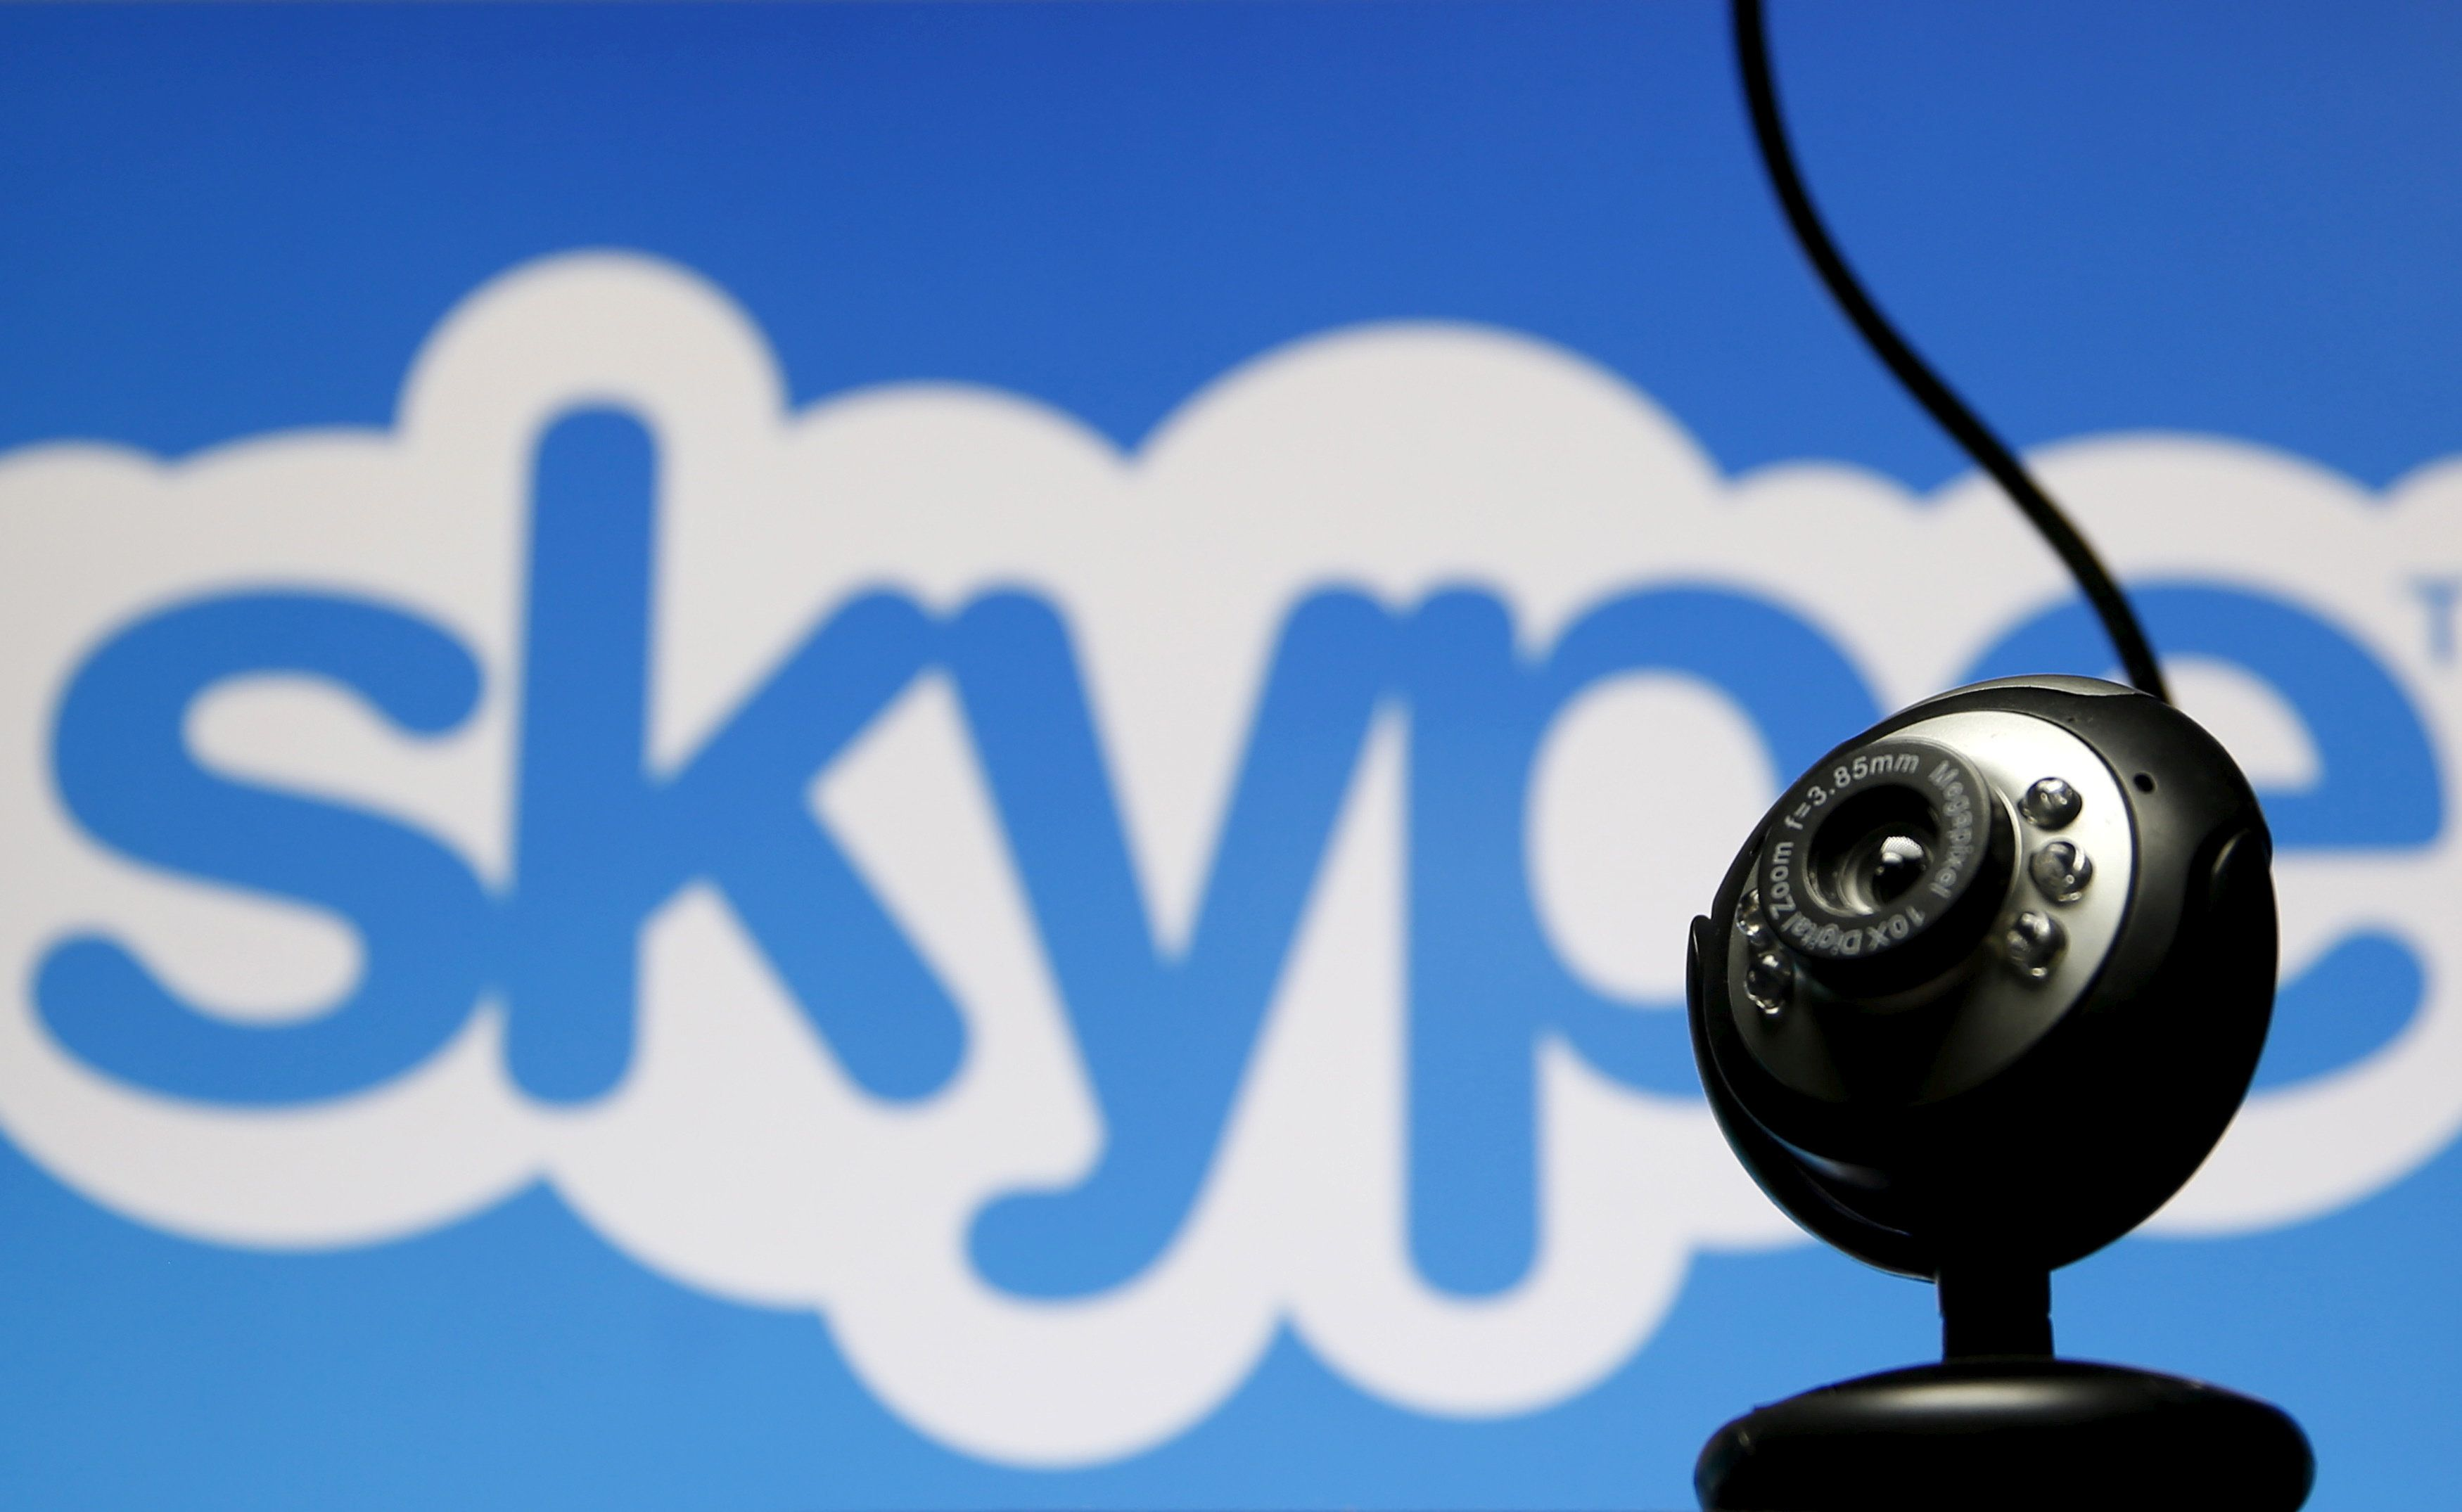 Microsoft's Skype app removed from Android and Apple app stores in China